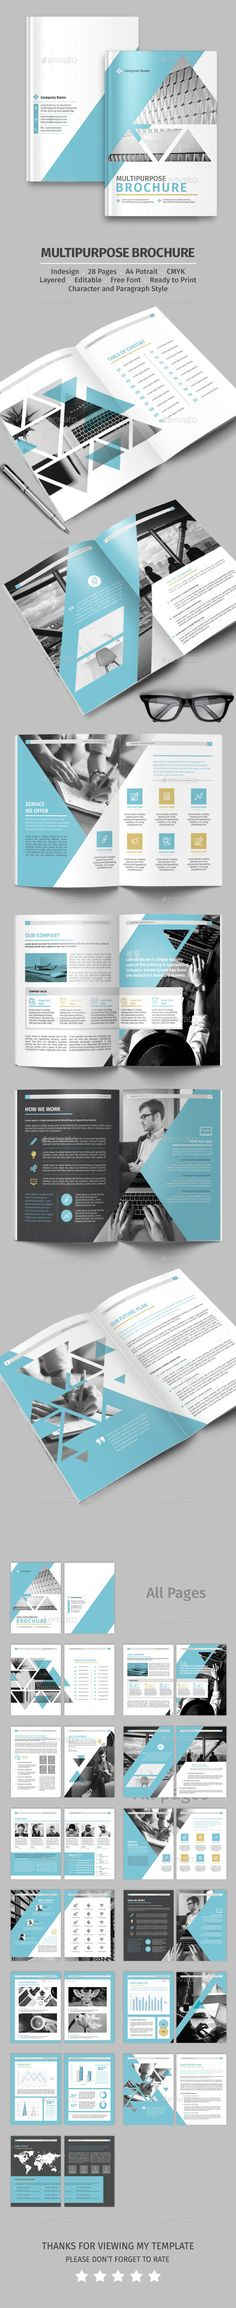 Multipurpose Brochure Template InDesign INDD. Download here: http://graphicriver.net/item/multipurpose-brochure/16471163?ref=ksioks